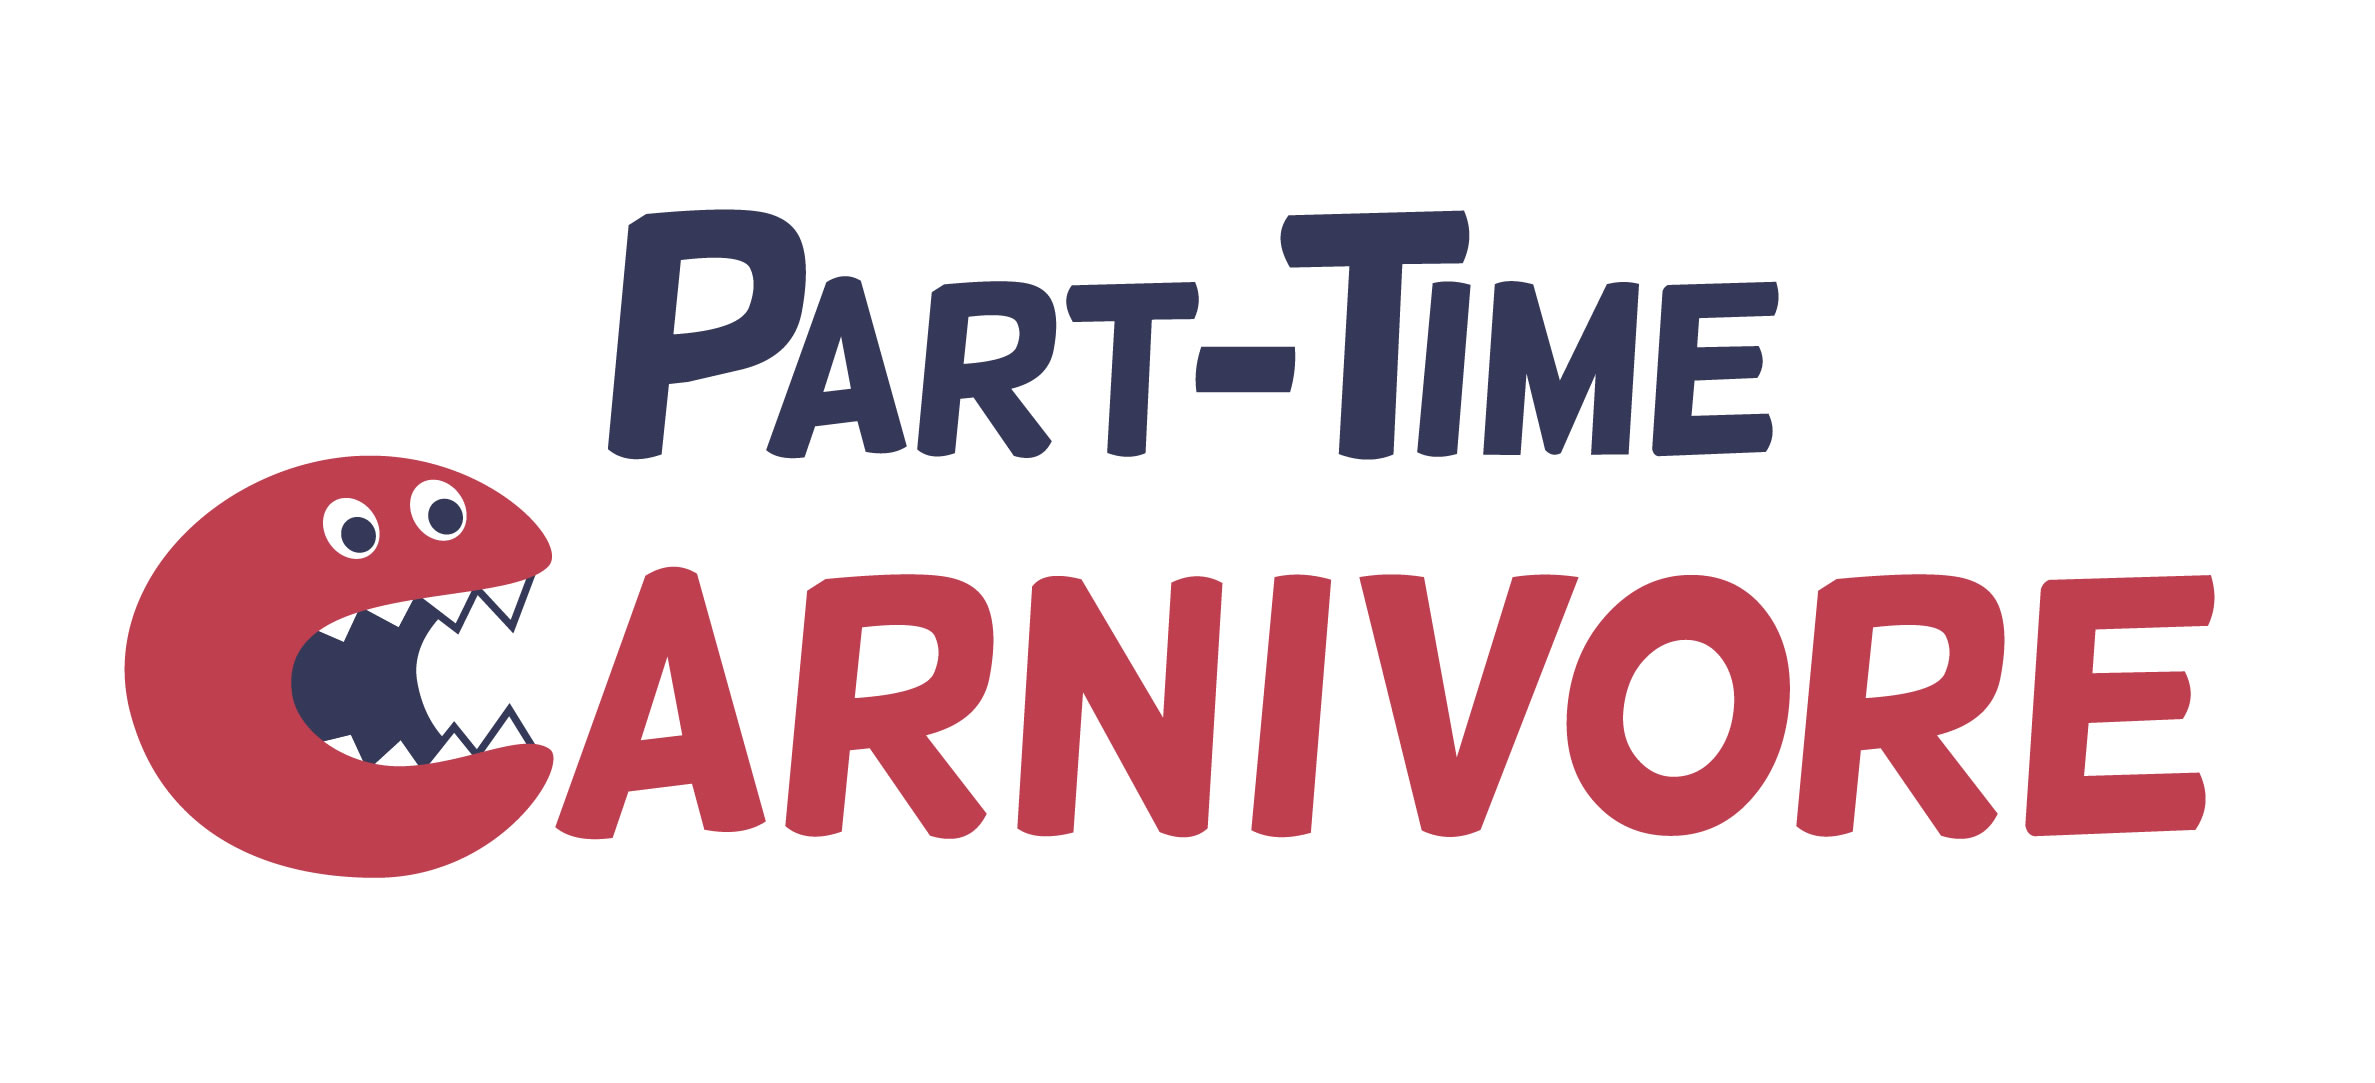 part-time-carnivore_logo_transparentjpg